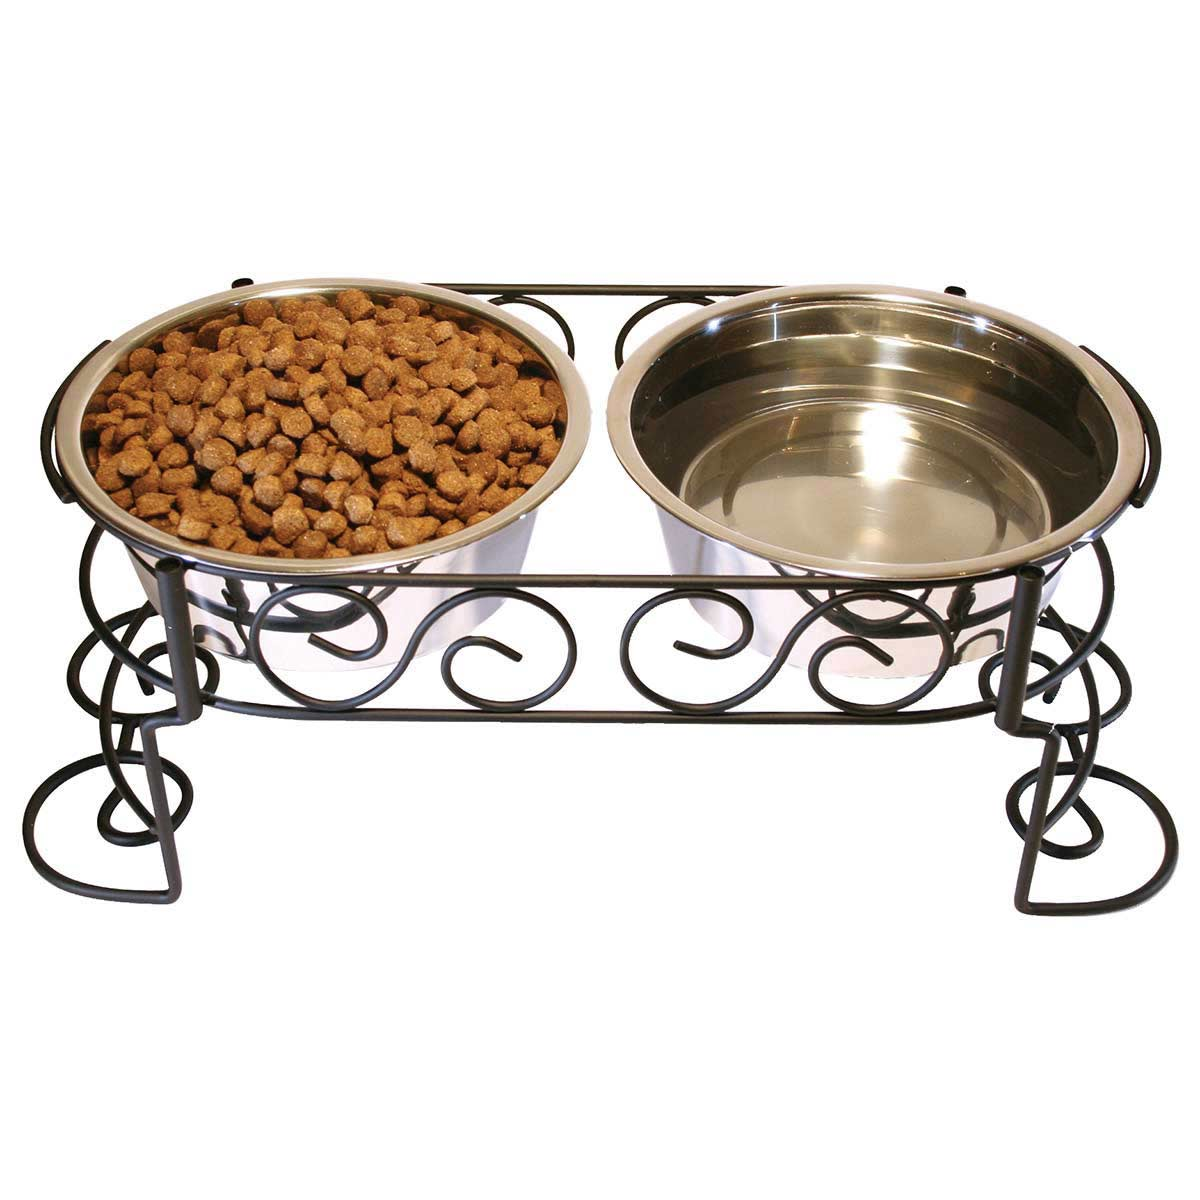 2 Quart Ethical Stainless Steel Mediterranean Old World Dog Double Diner